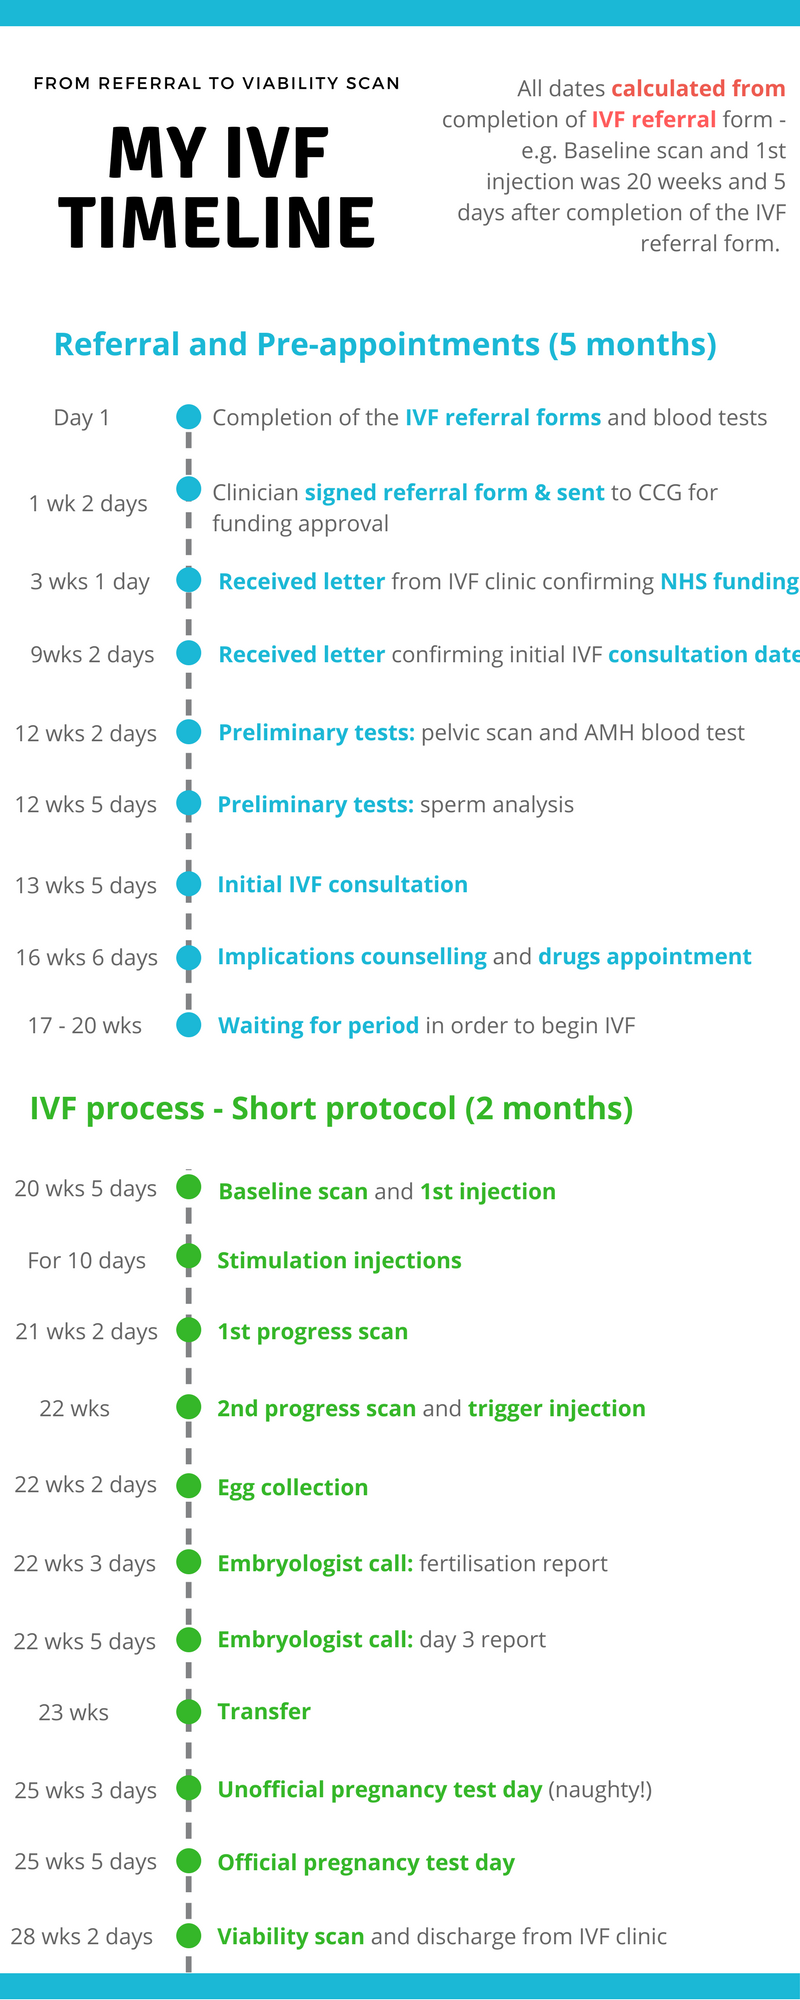 How long does the IVF process take?